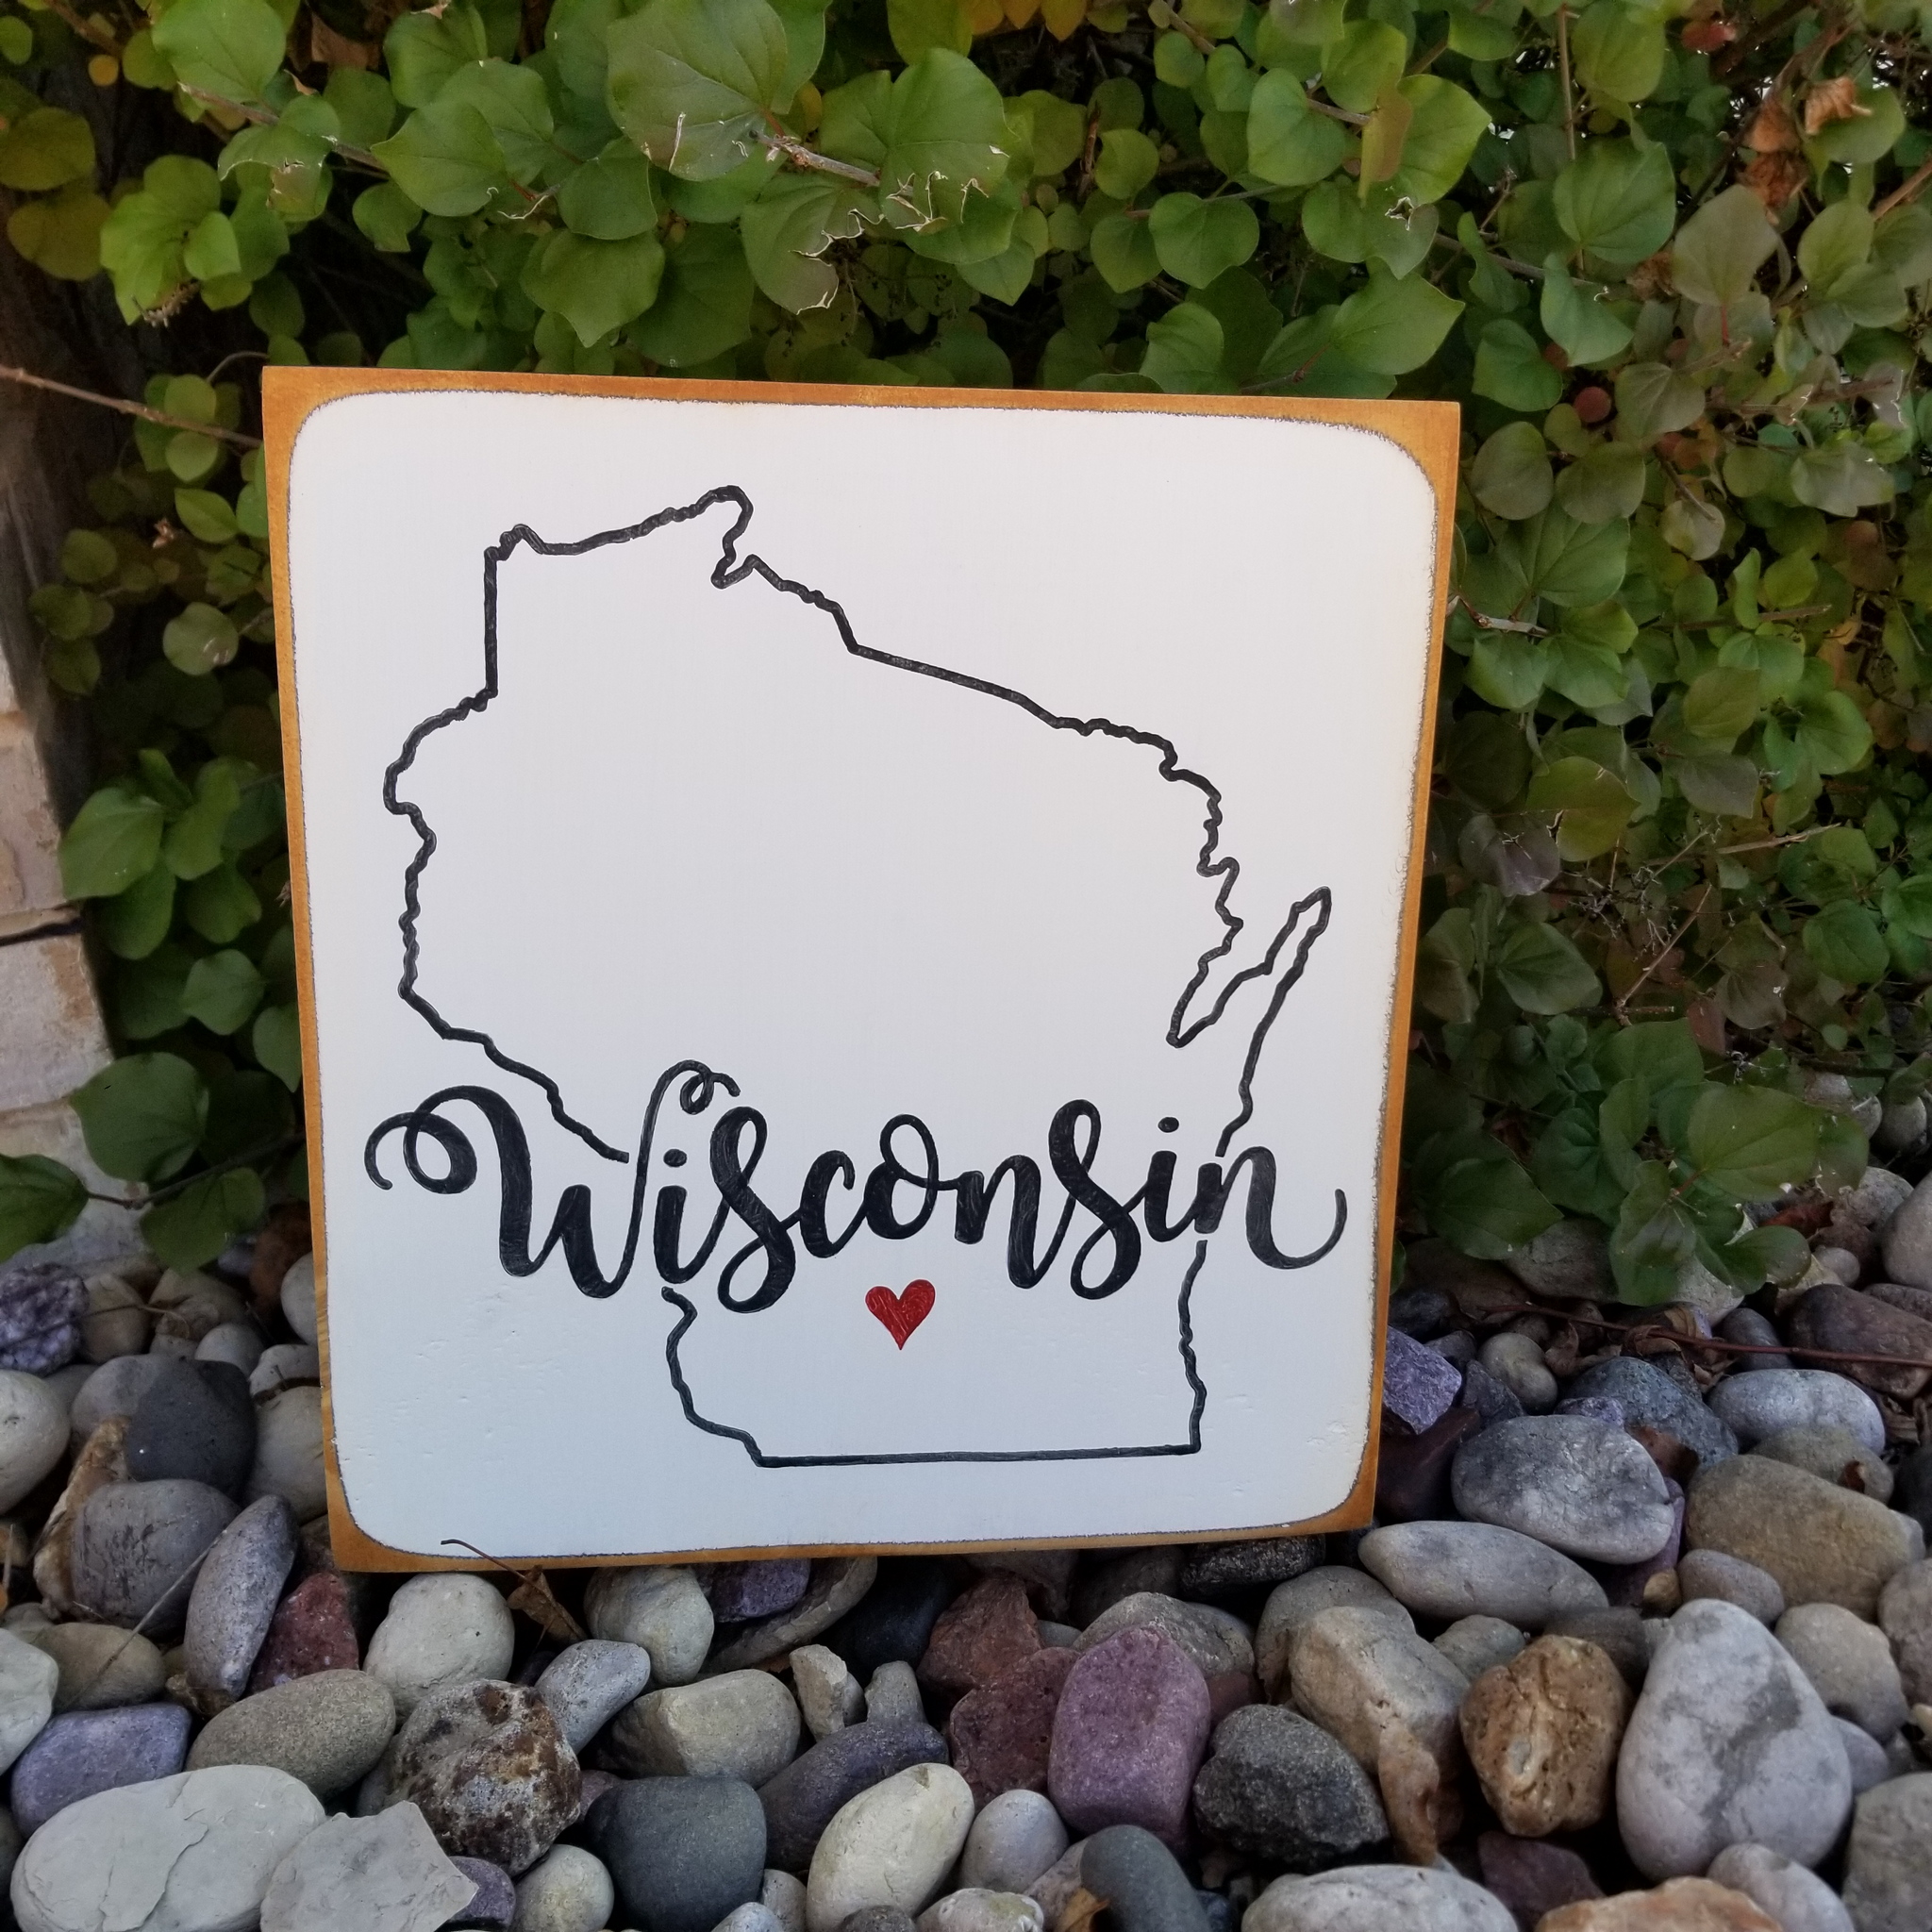 Wisconsin Wood sign